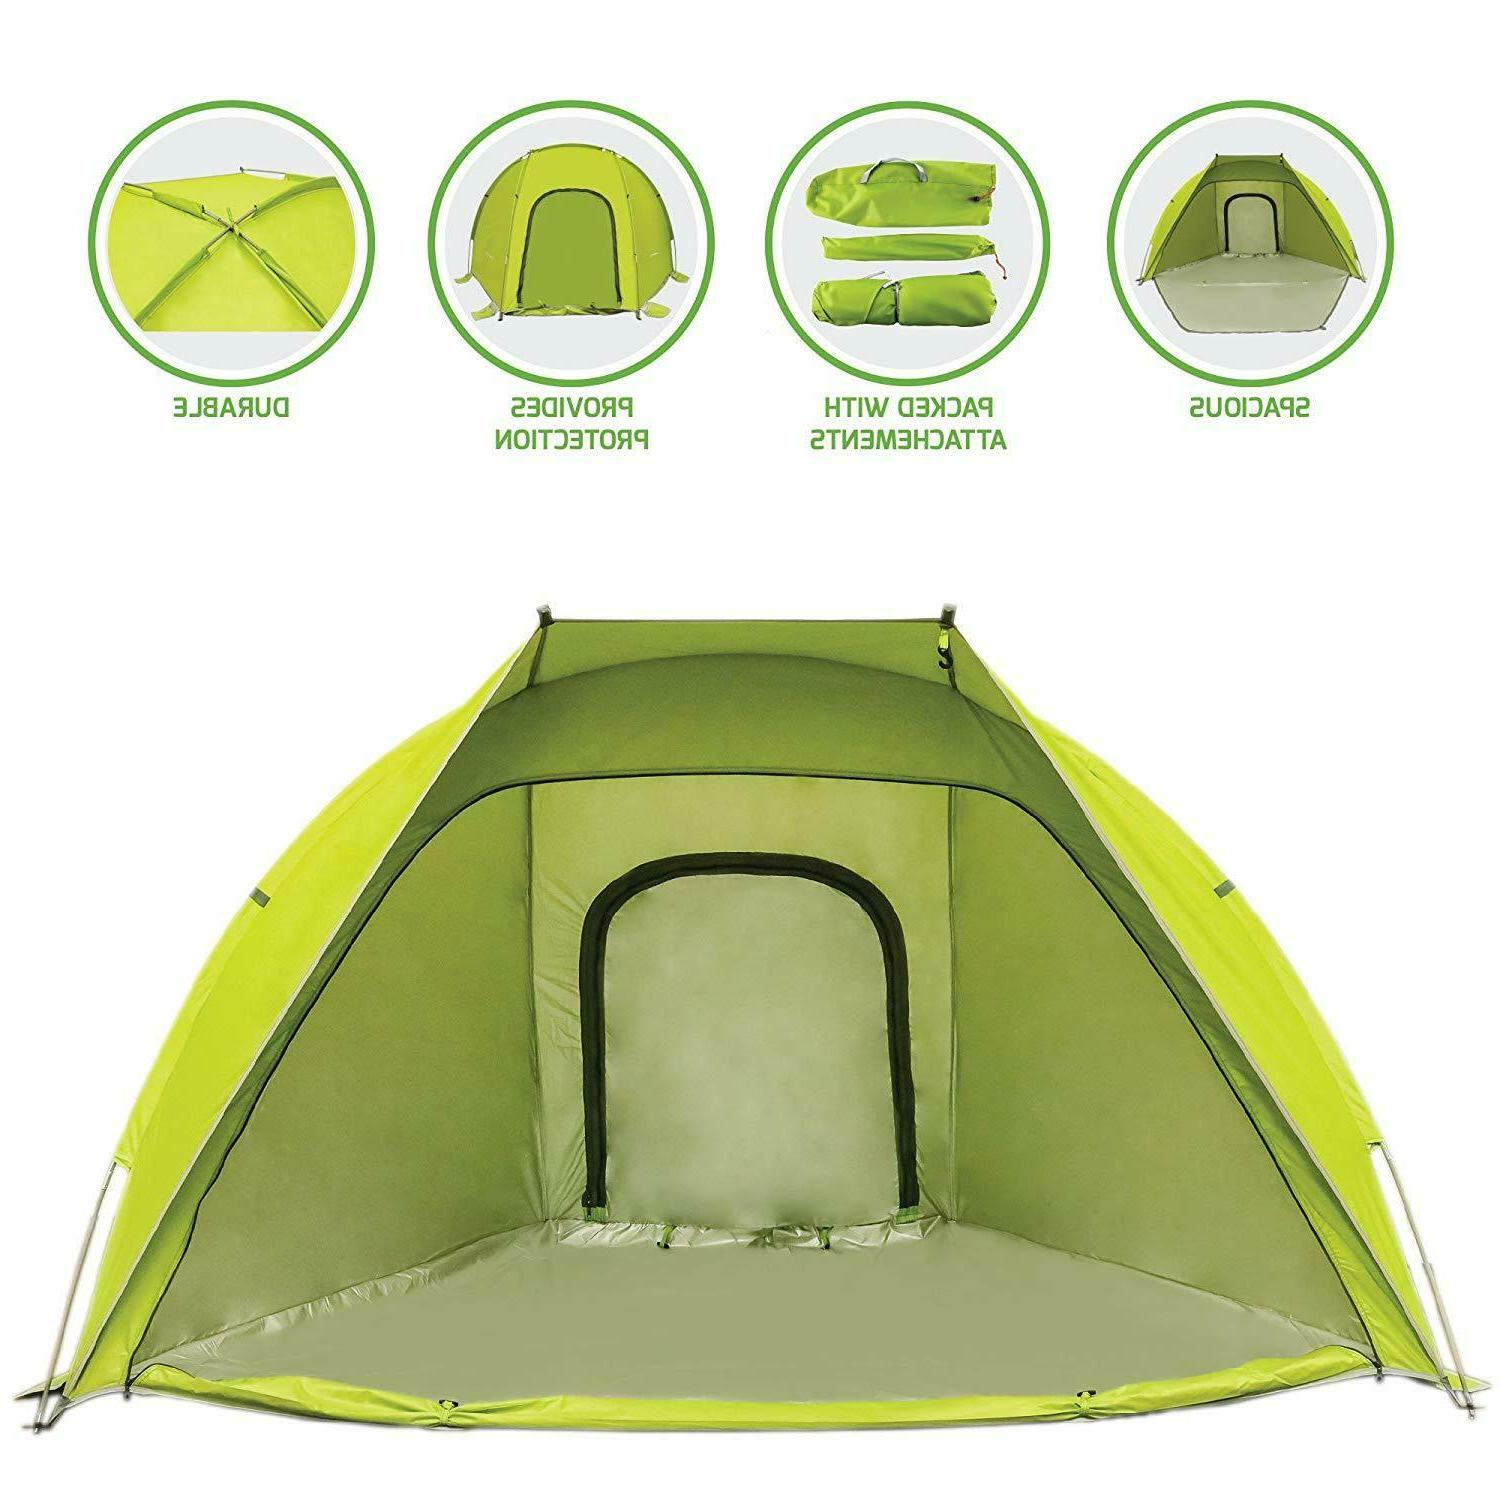 2 person outdoor dome tent green tb0174g